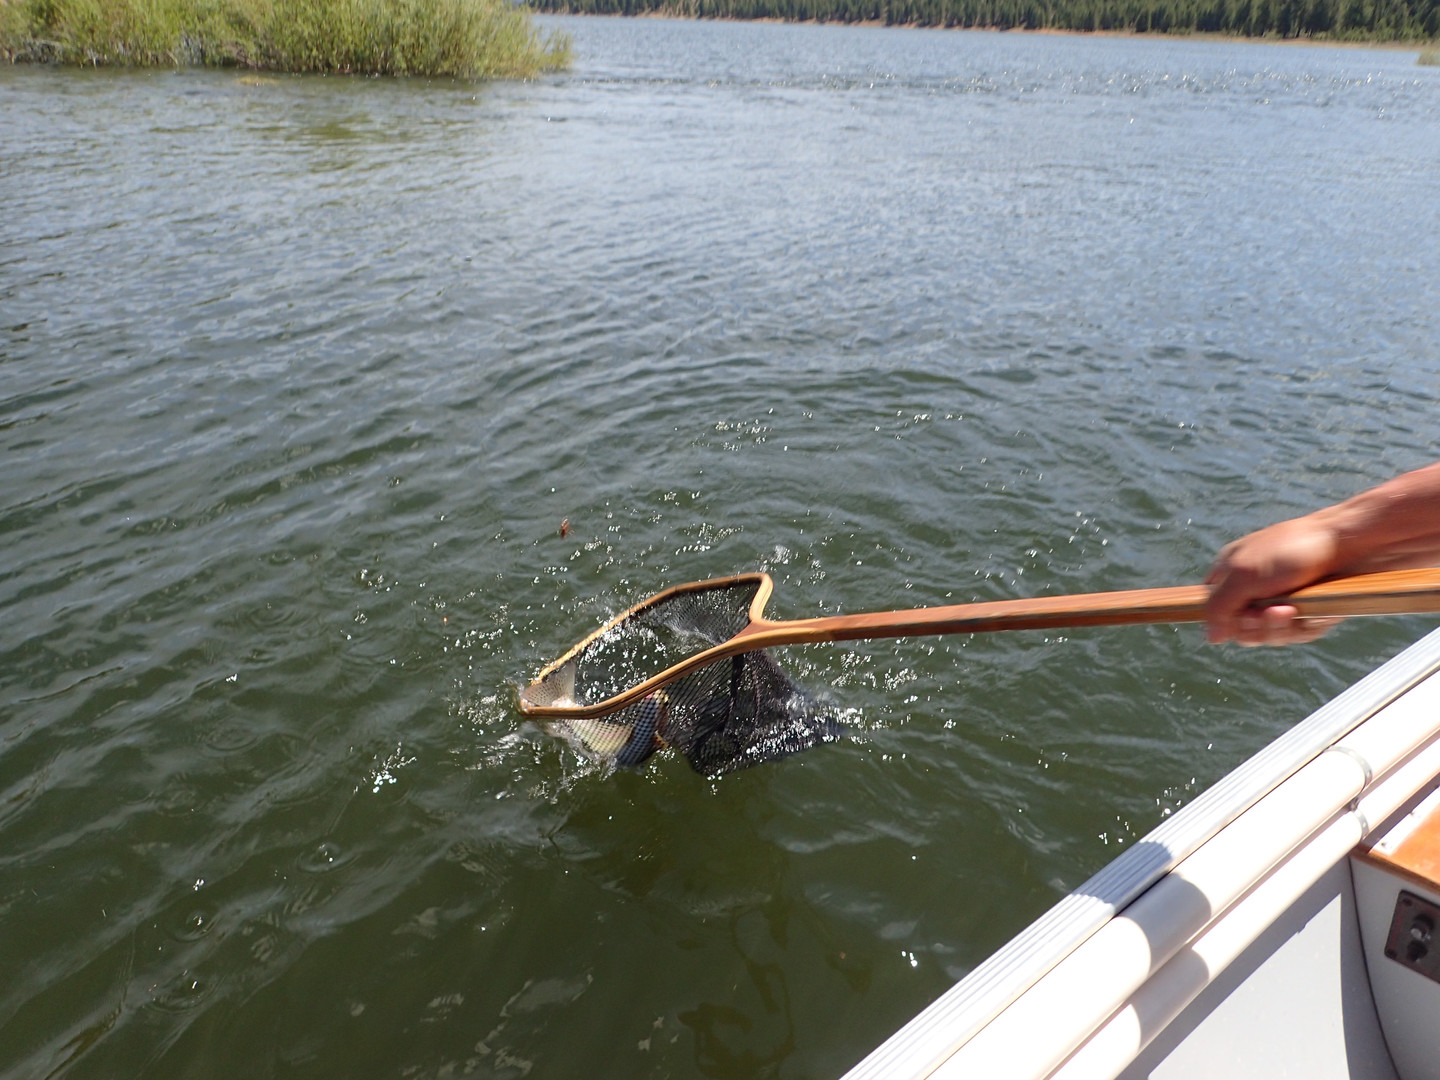 Netting a fish at Stampede